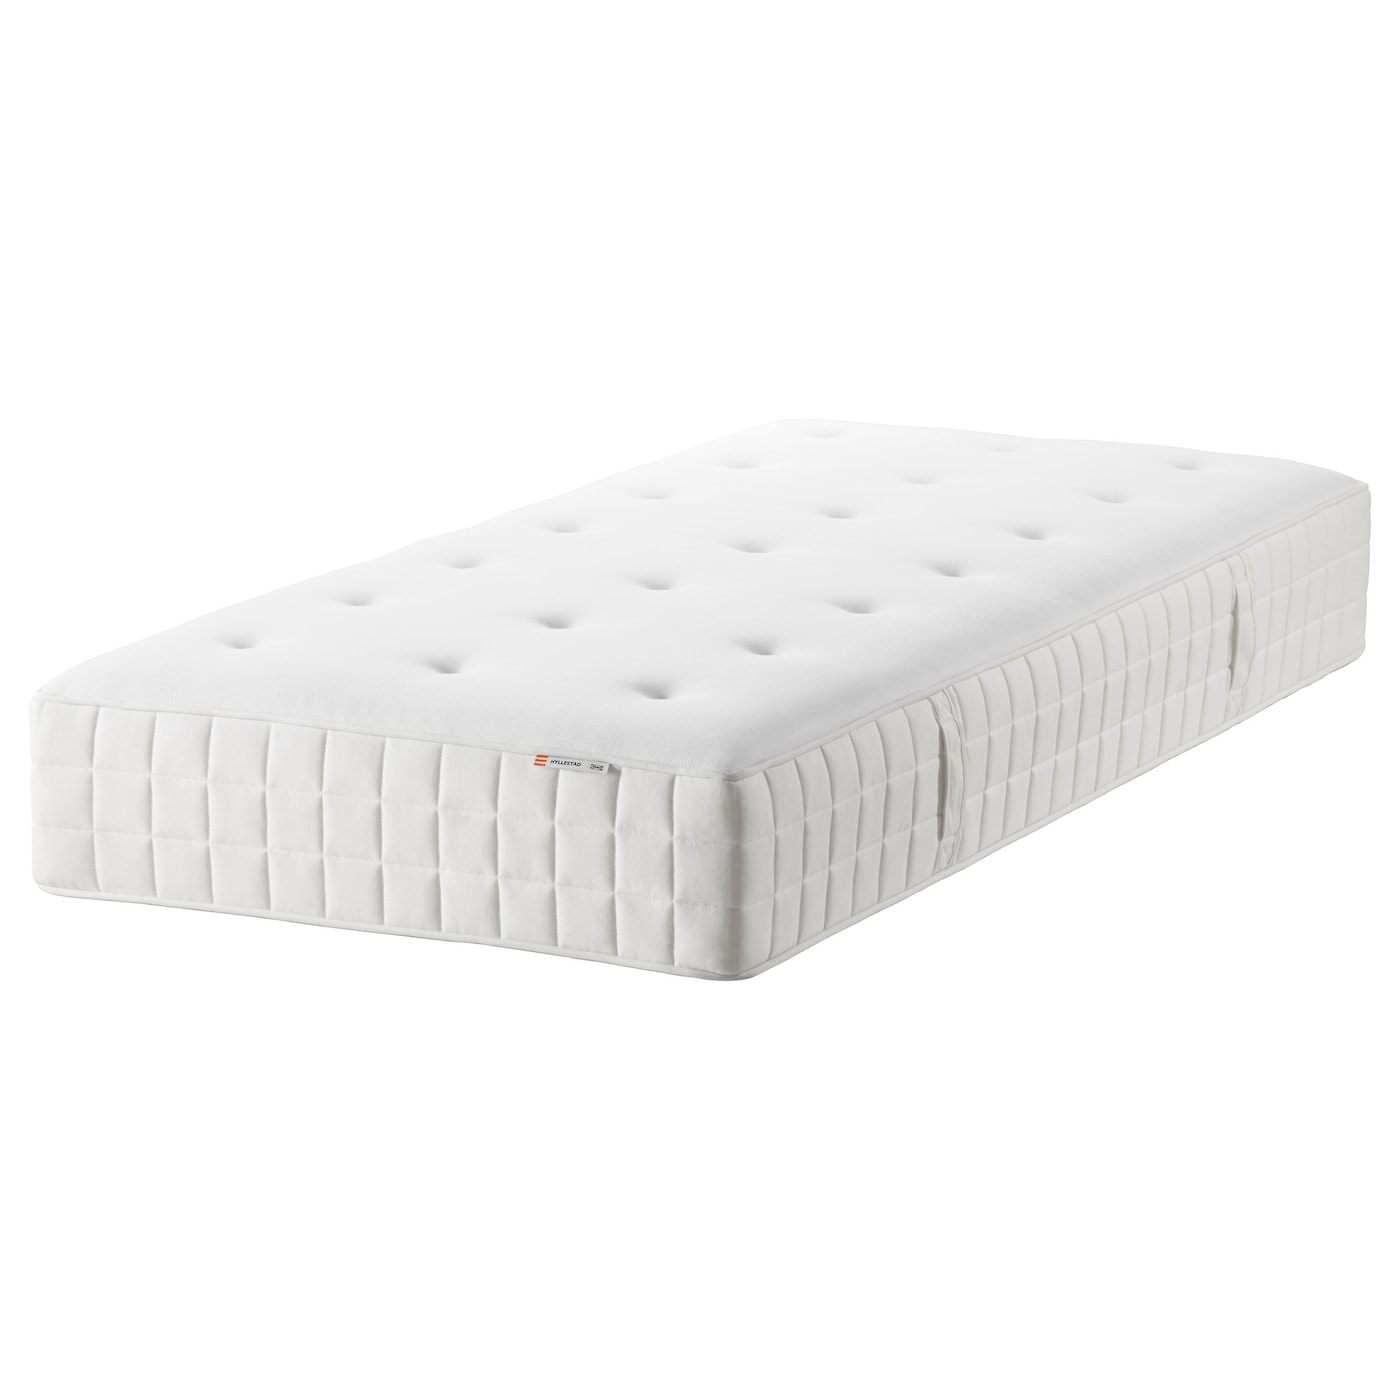 HYLLESTAD Pocket sprung mattress Firm white Standard